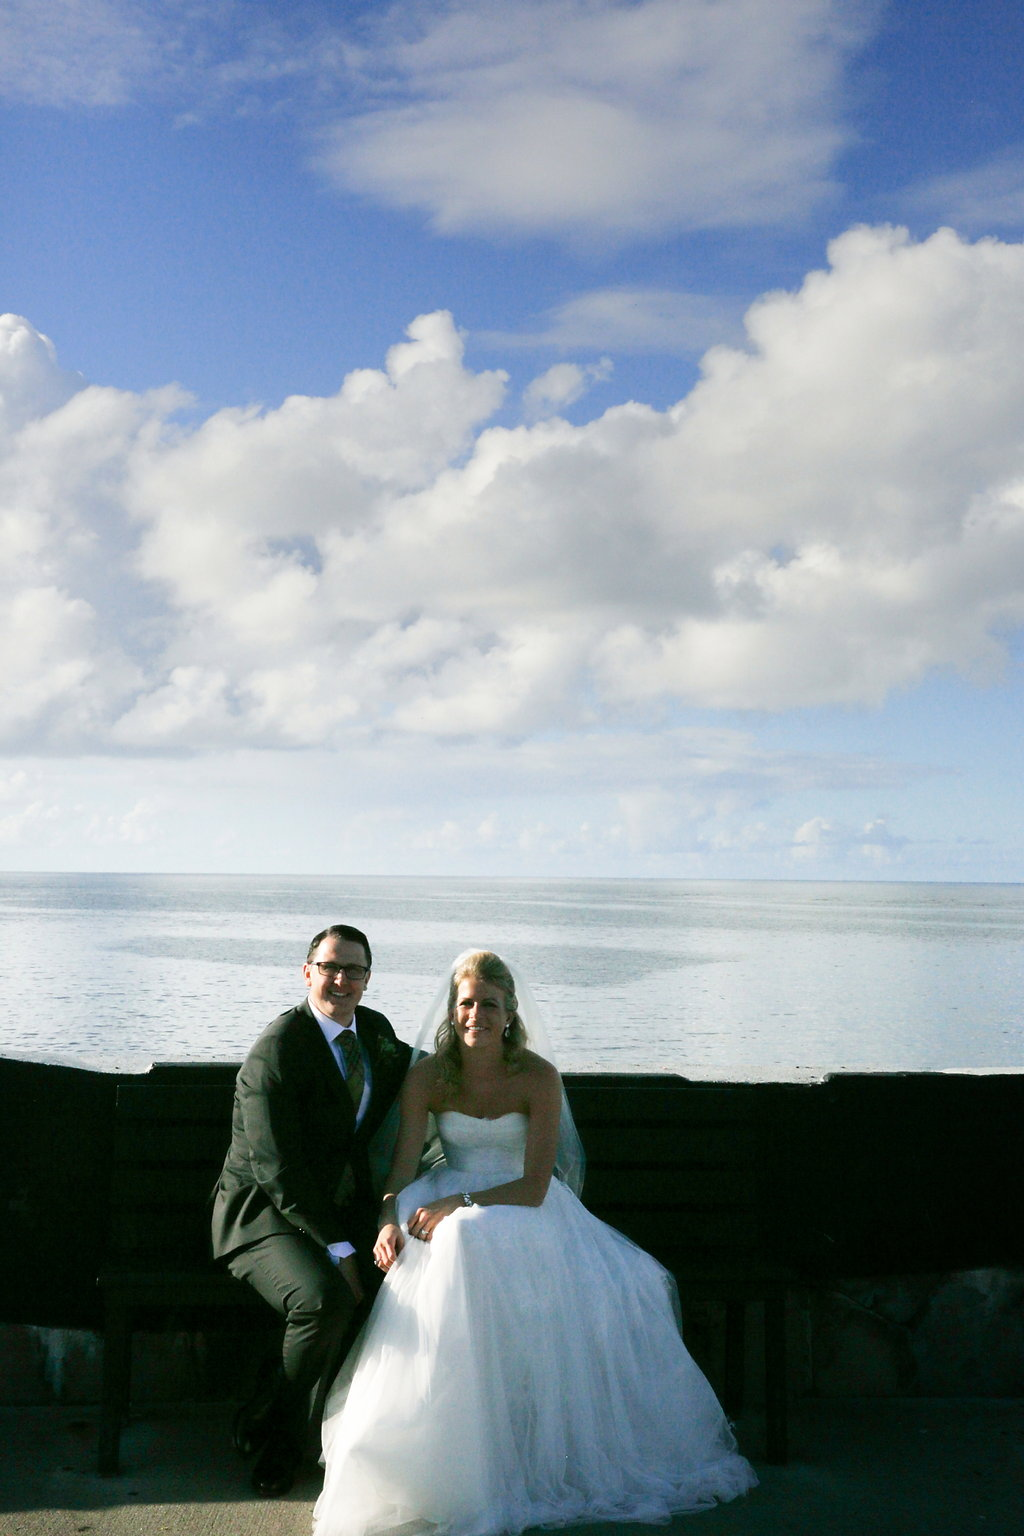 Wedding Planner,Luxury Wedding, Ireland Wedding ,Trump Golf Doonbeg, Destination Wedding Ireland